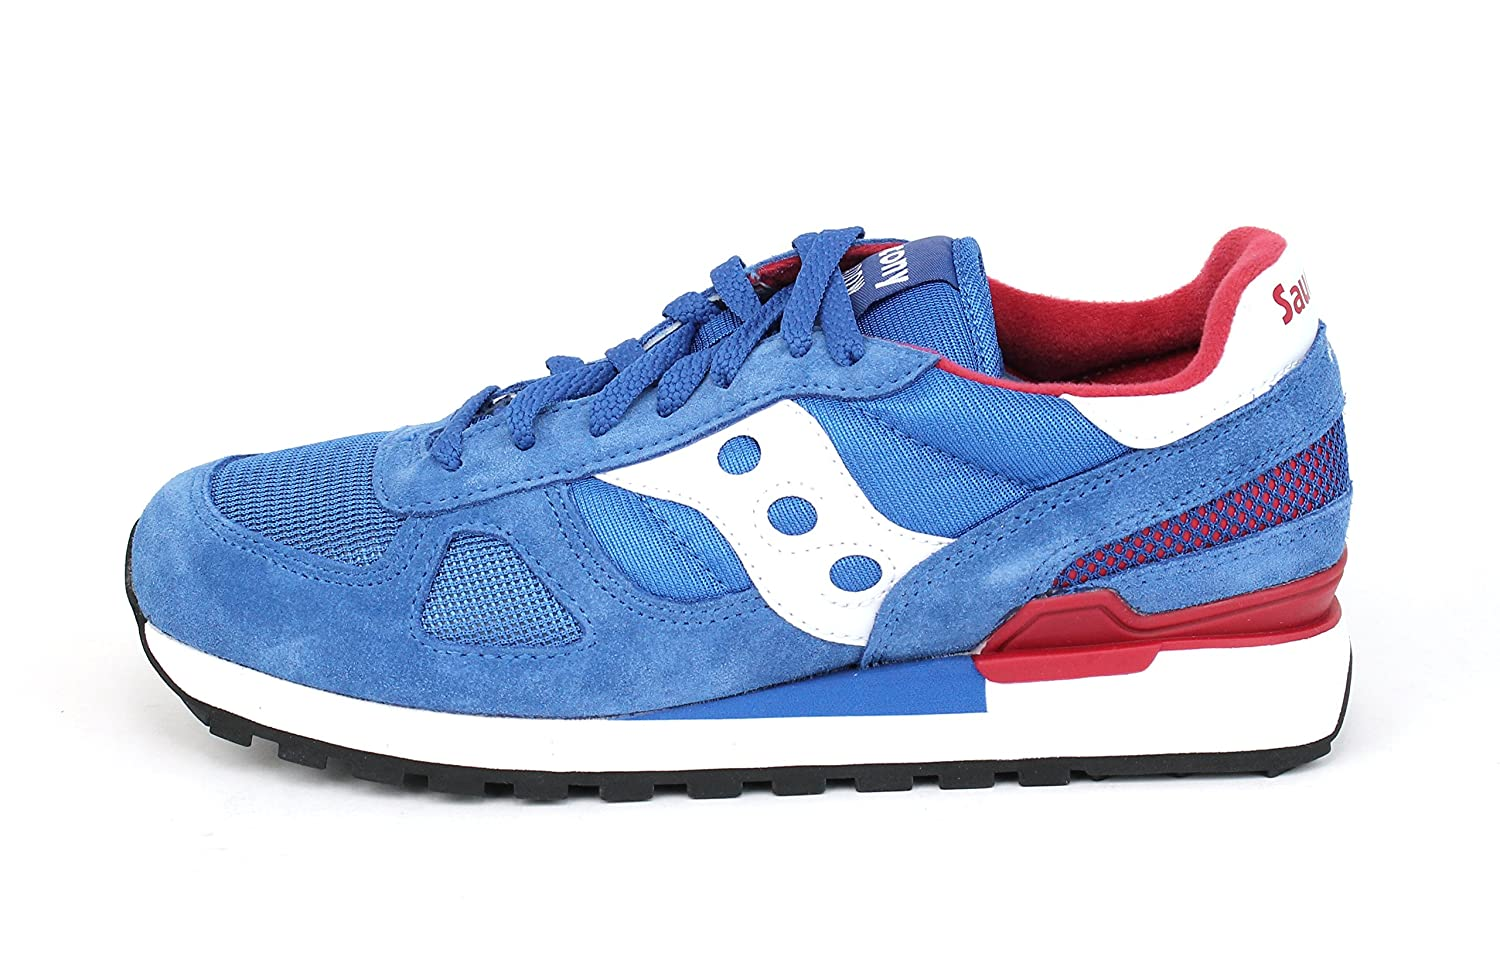 new product 9926a 882ad Saucony Shadow Original Blue/White S2108-593 (Size: 9.5 ...